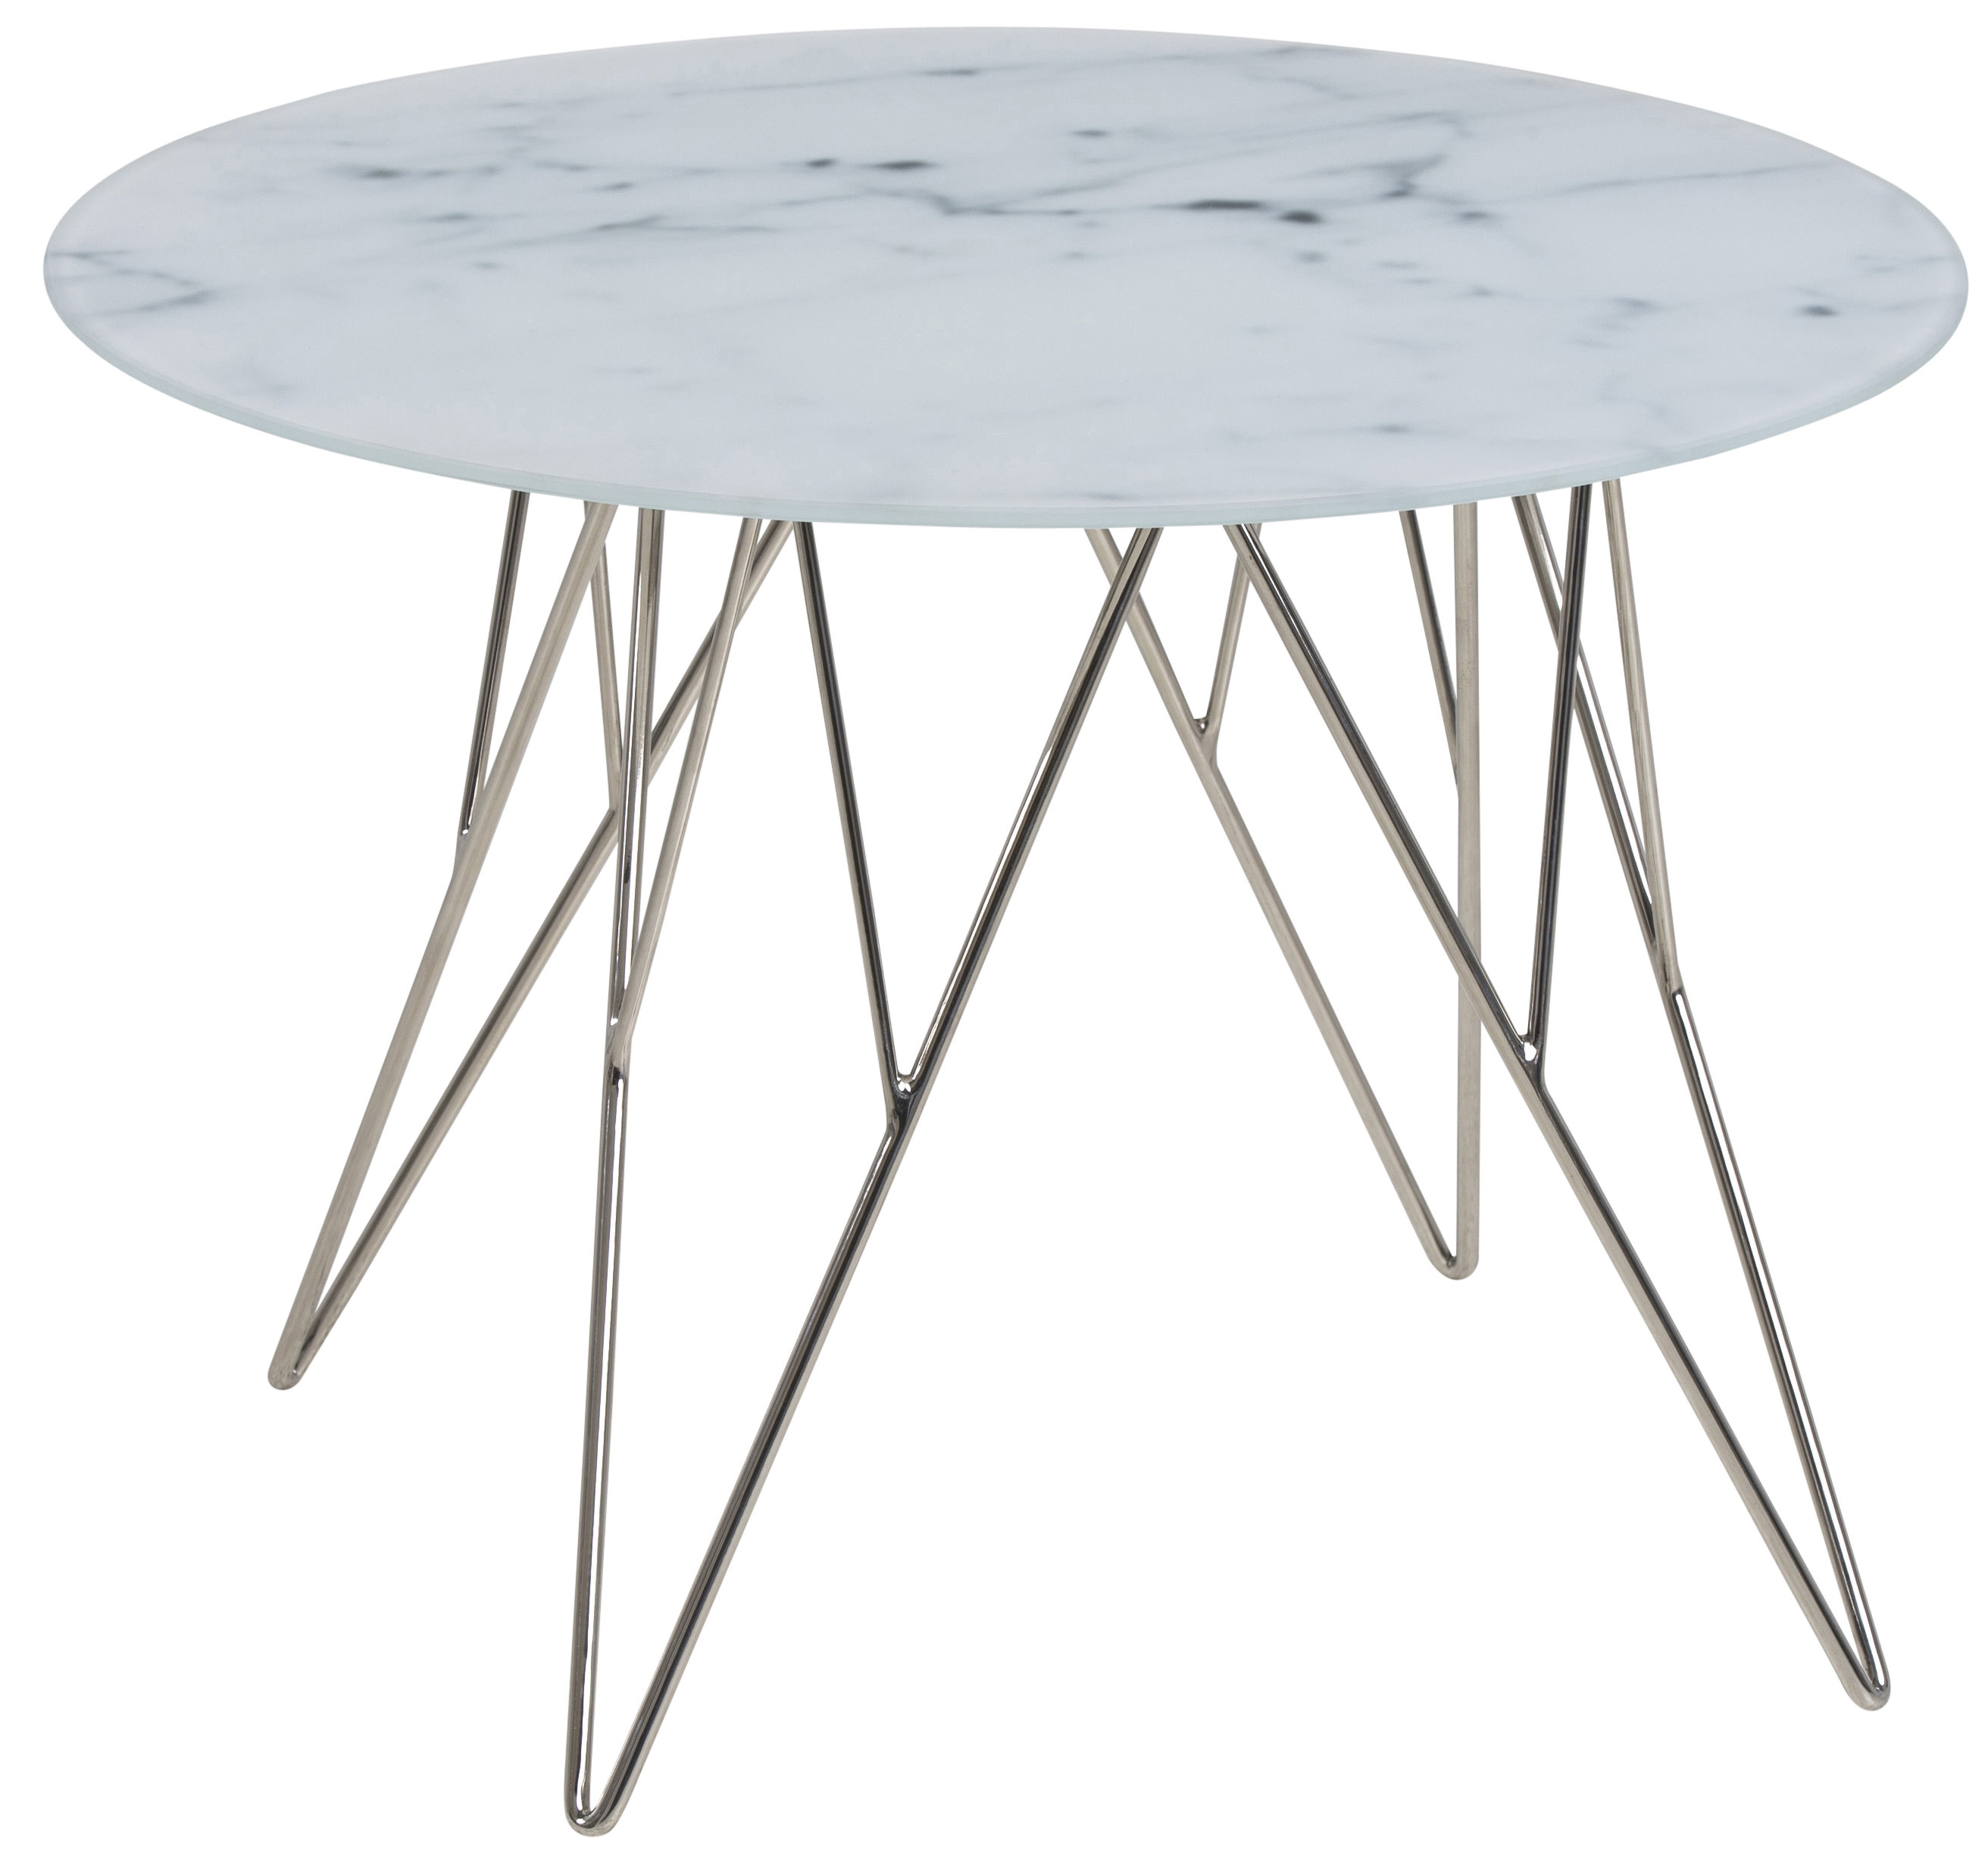 Marble Coffee Table Ebay Uk: Pkline Side Table ø55cm Marble Table Living Room Corner